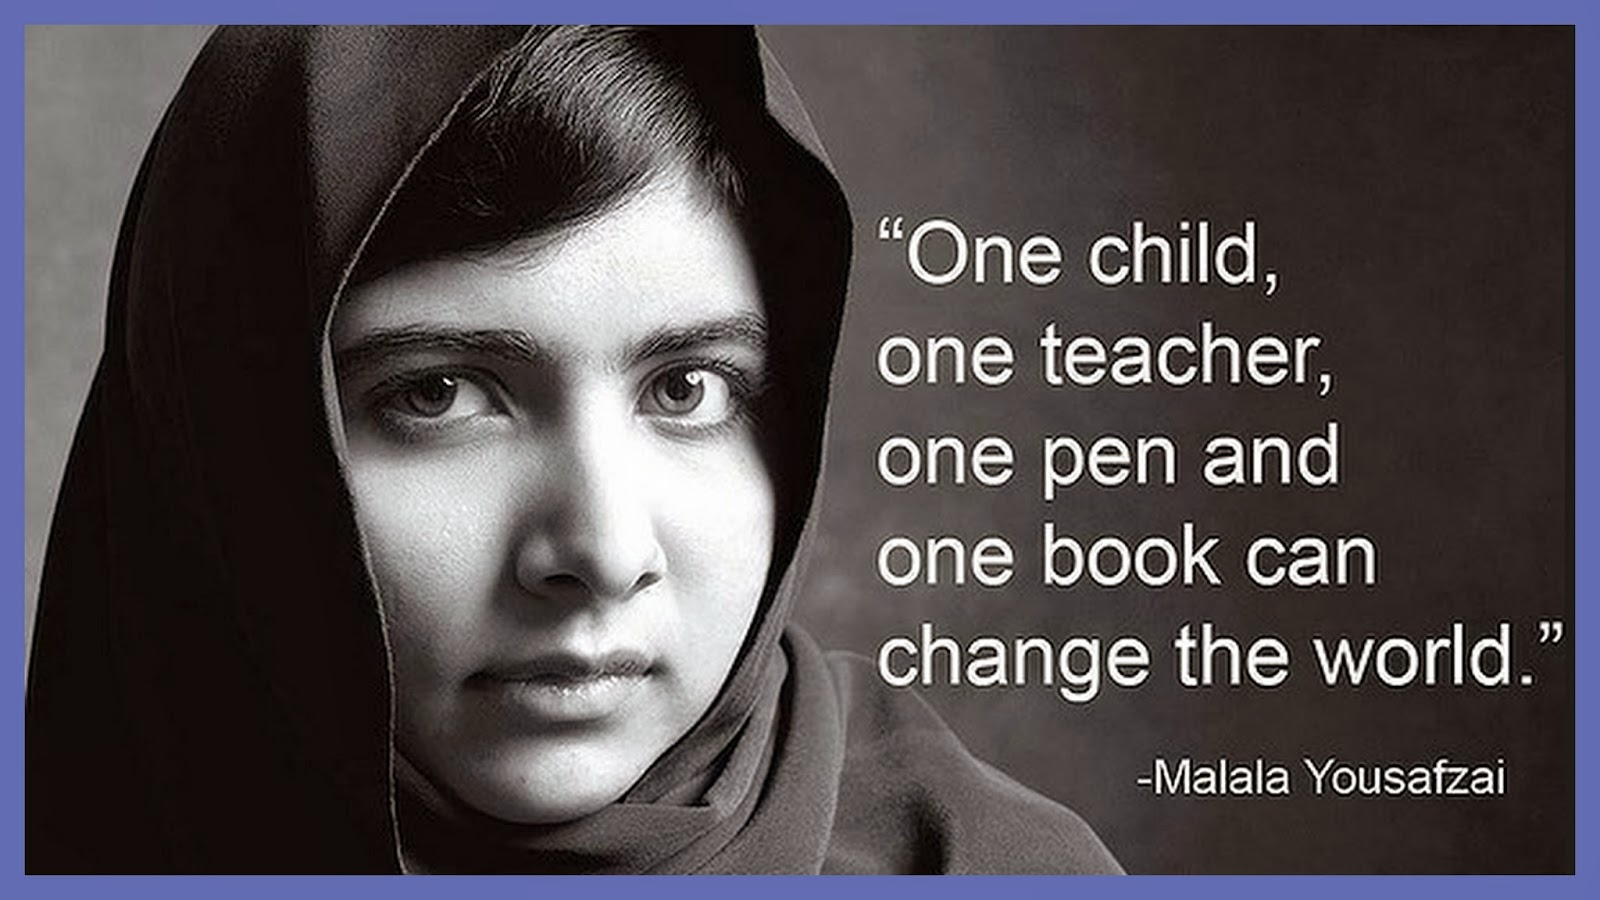 Women Empowerment - Malala Yousafzai quotes - One child, one teacher, one pen and one book can change the world - Empowering Women - Women in Support of Women - Gender equality - Equal access to education - girl power - feminism - powerful women - women power